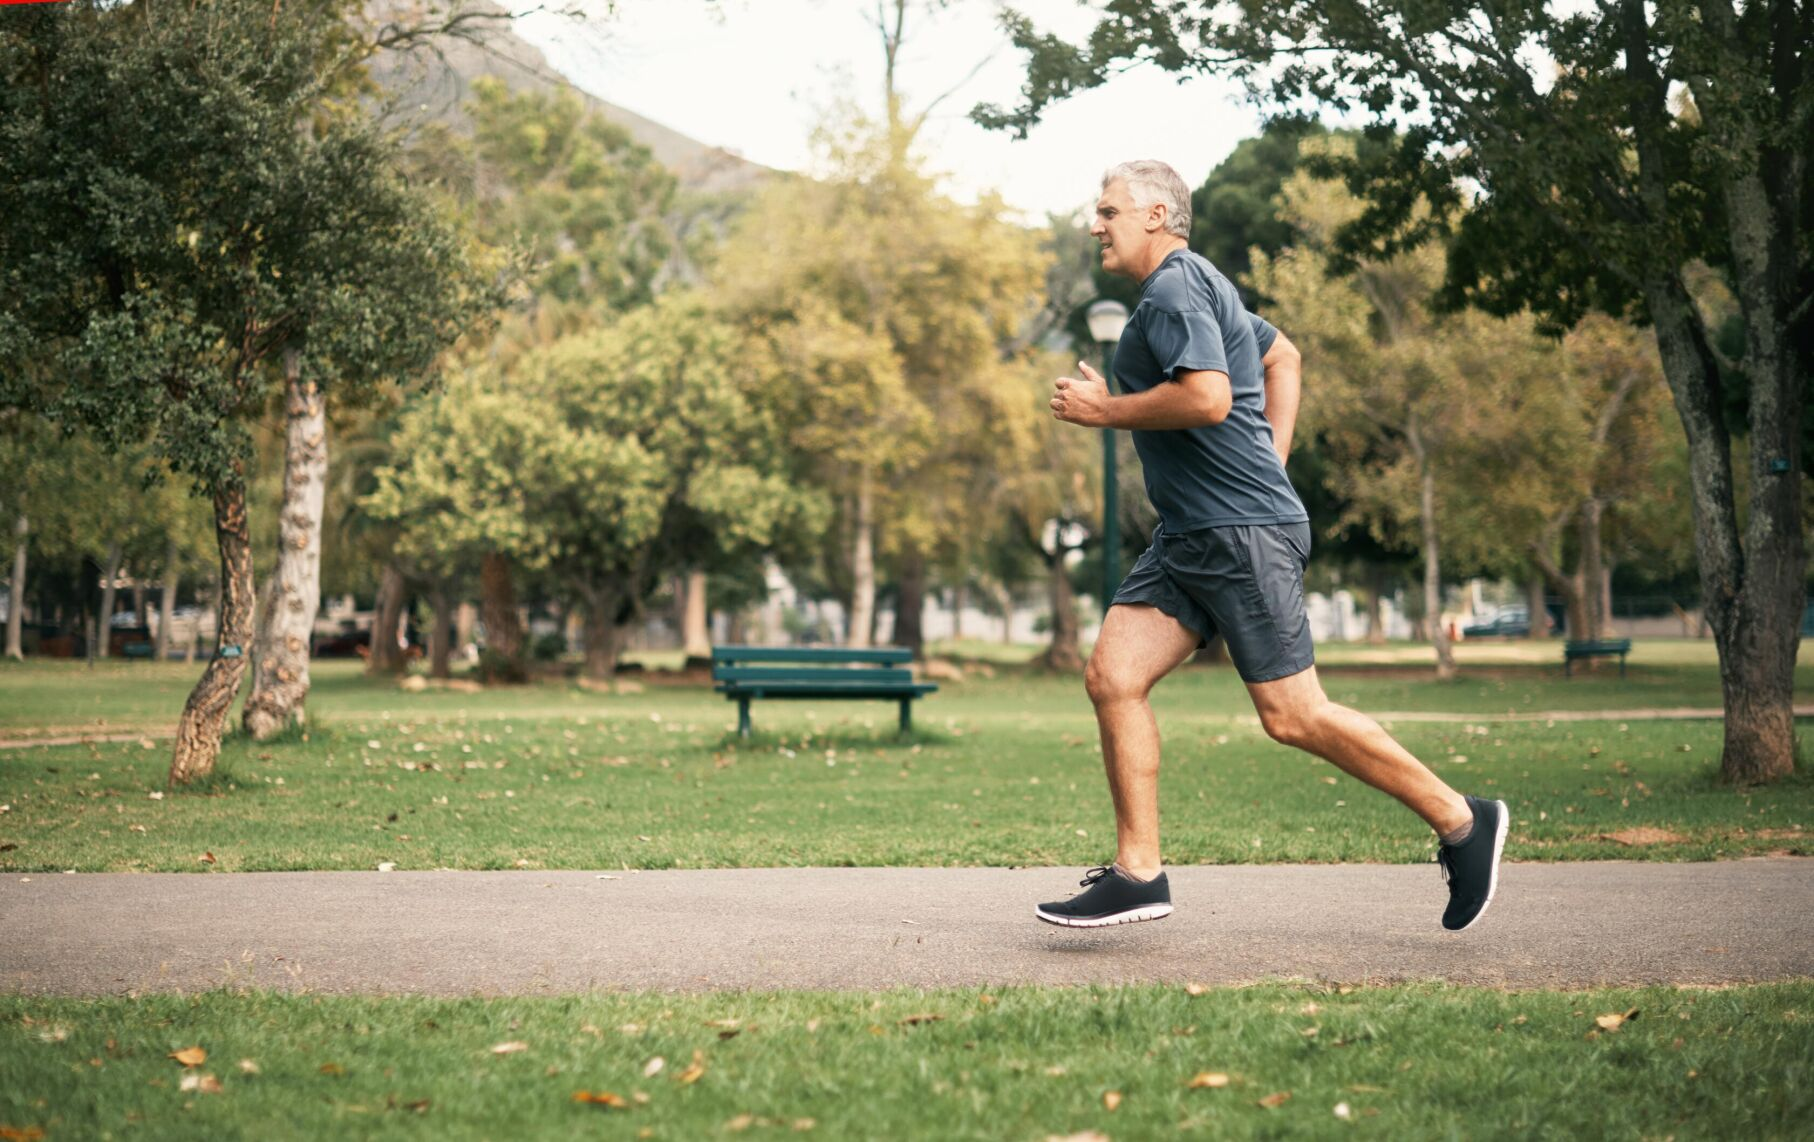 <p>For many people, the quality of exercise and the quality of overall nutrition make more of a difference than the timing of exercise, according to researchers.</p>